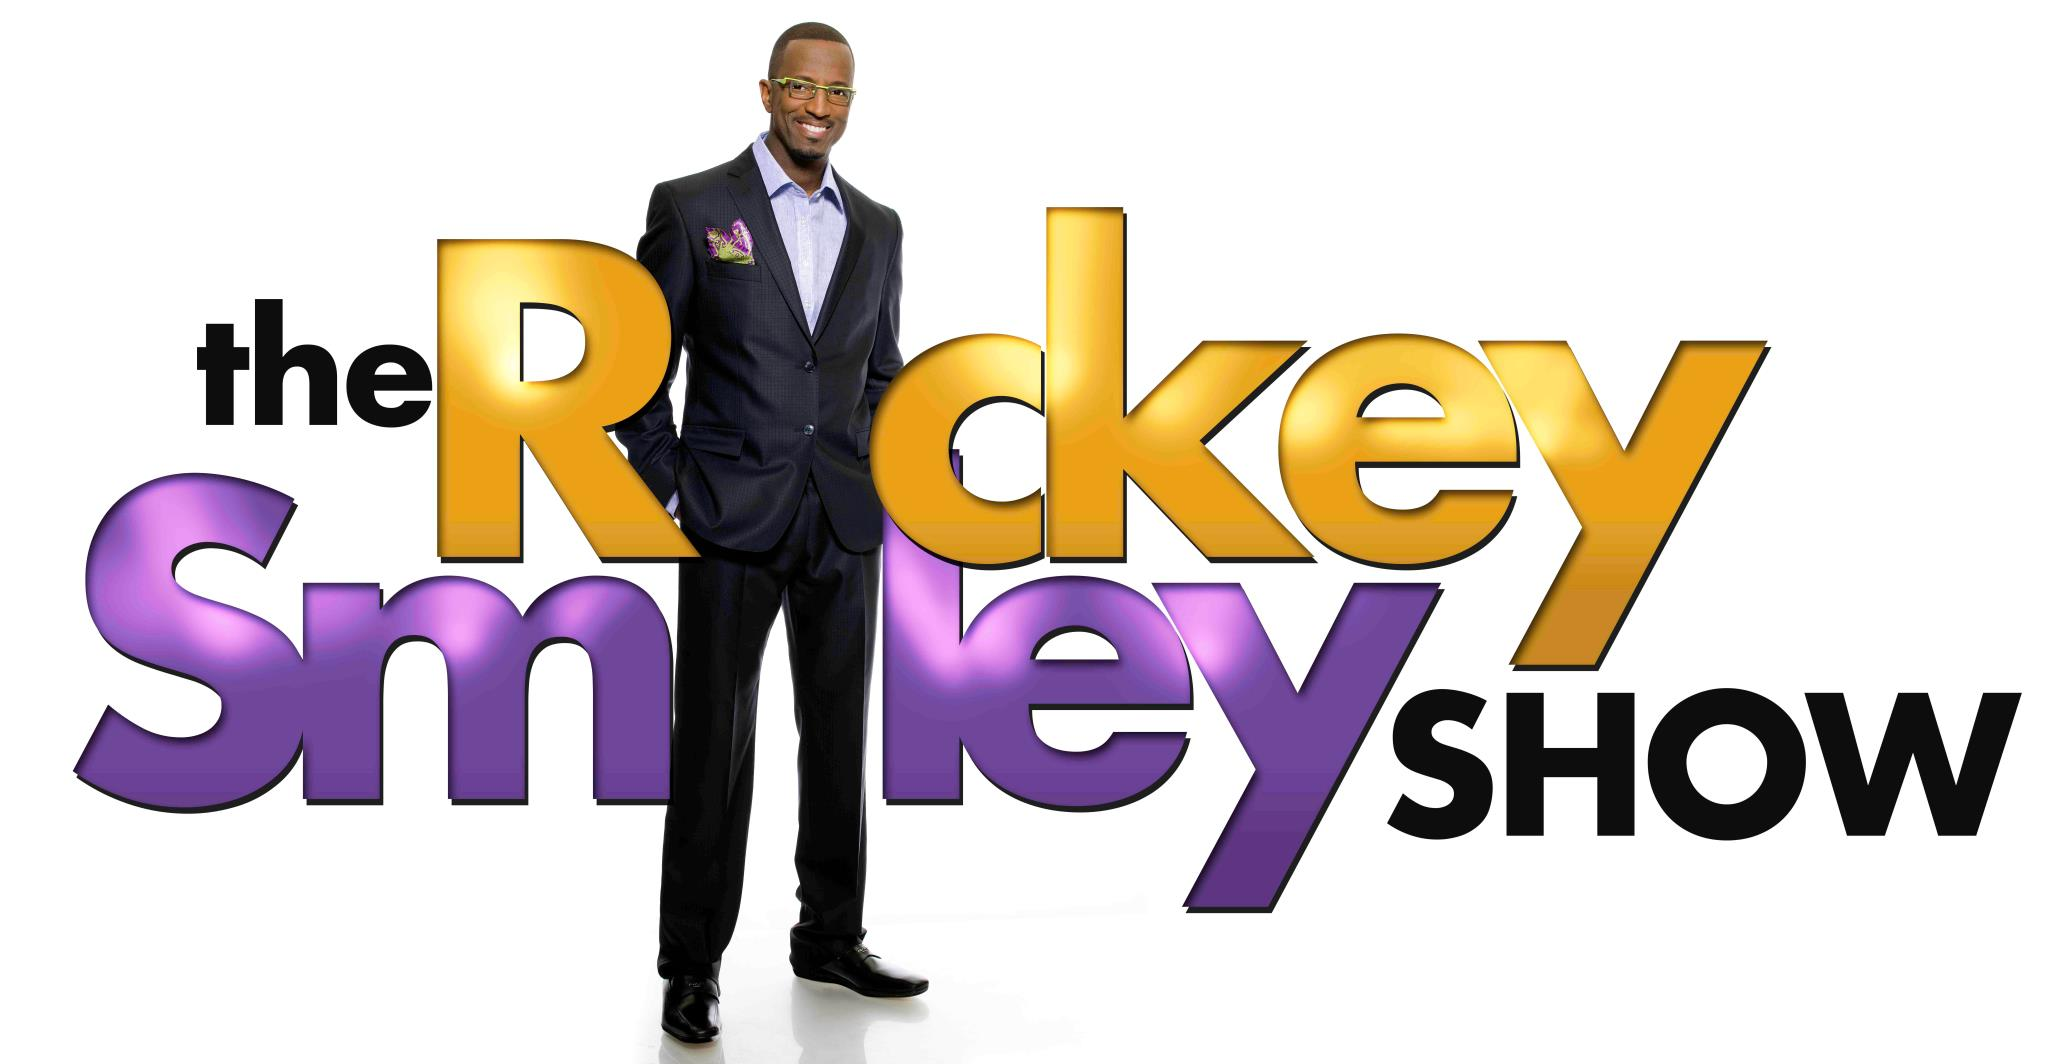 the-rickey-smiley-show.jpeg